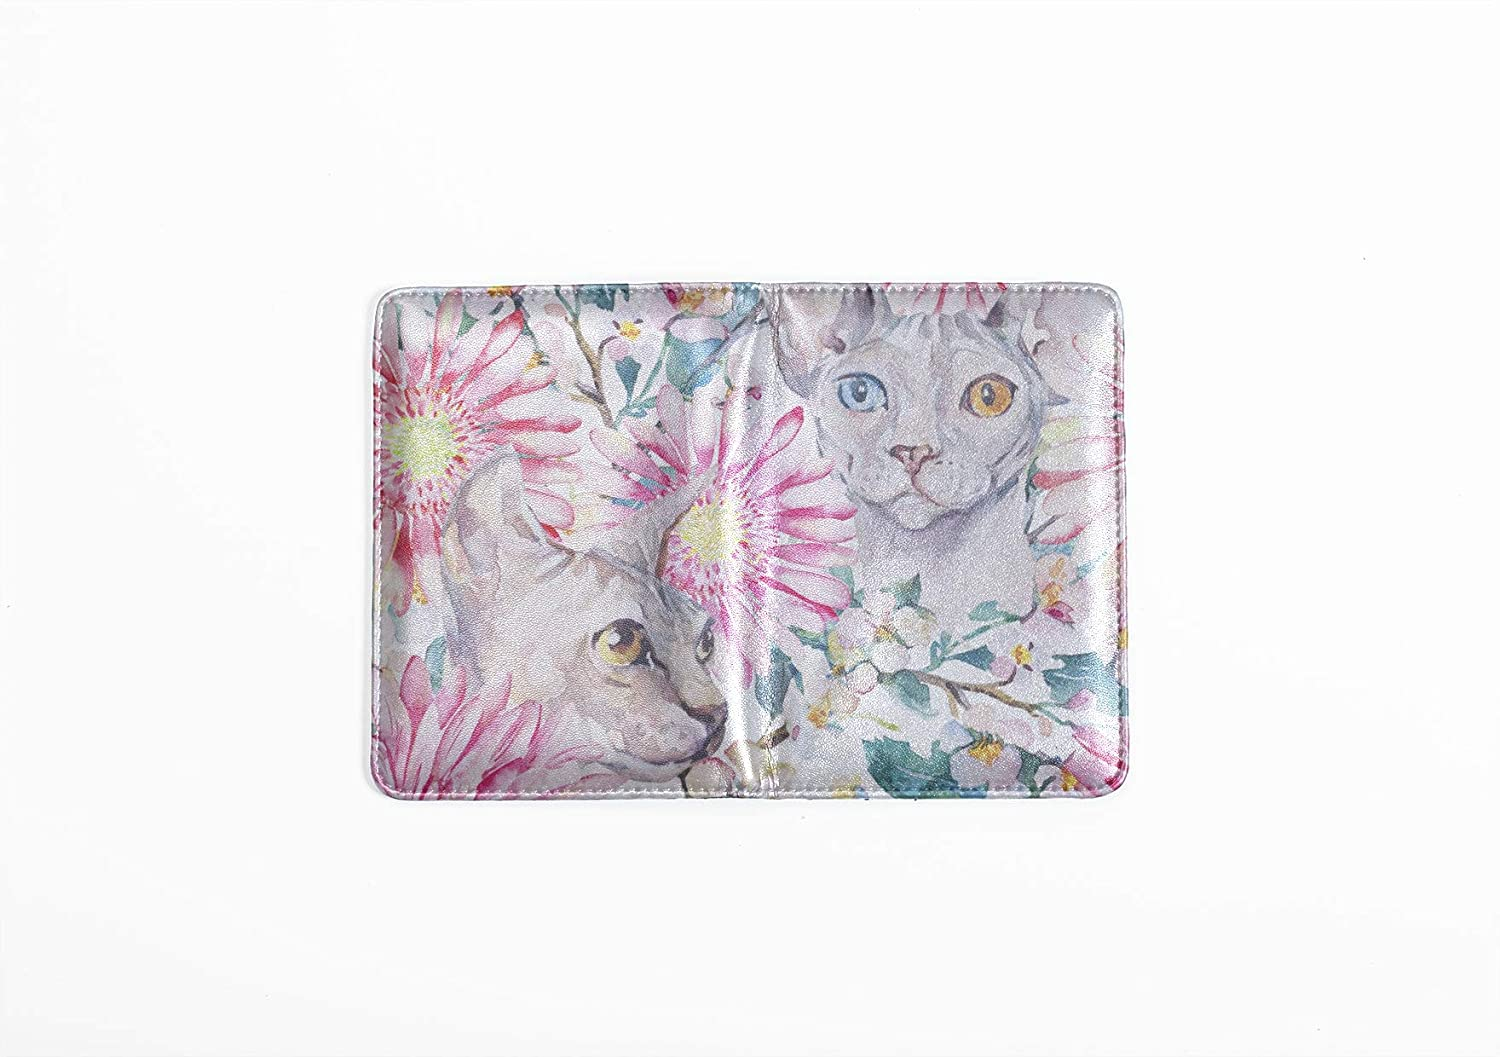 Kids Passport Cover Cute Clever Animal Cat Pet Siamese Passport Cover Girl Multi Purpose Print Passport Travel Case Travel Wallets For Unisex 5.51x4.37 Inch